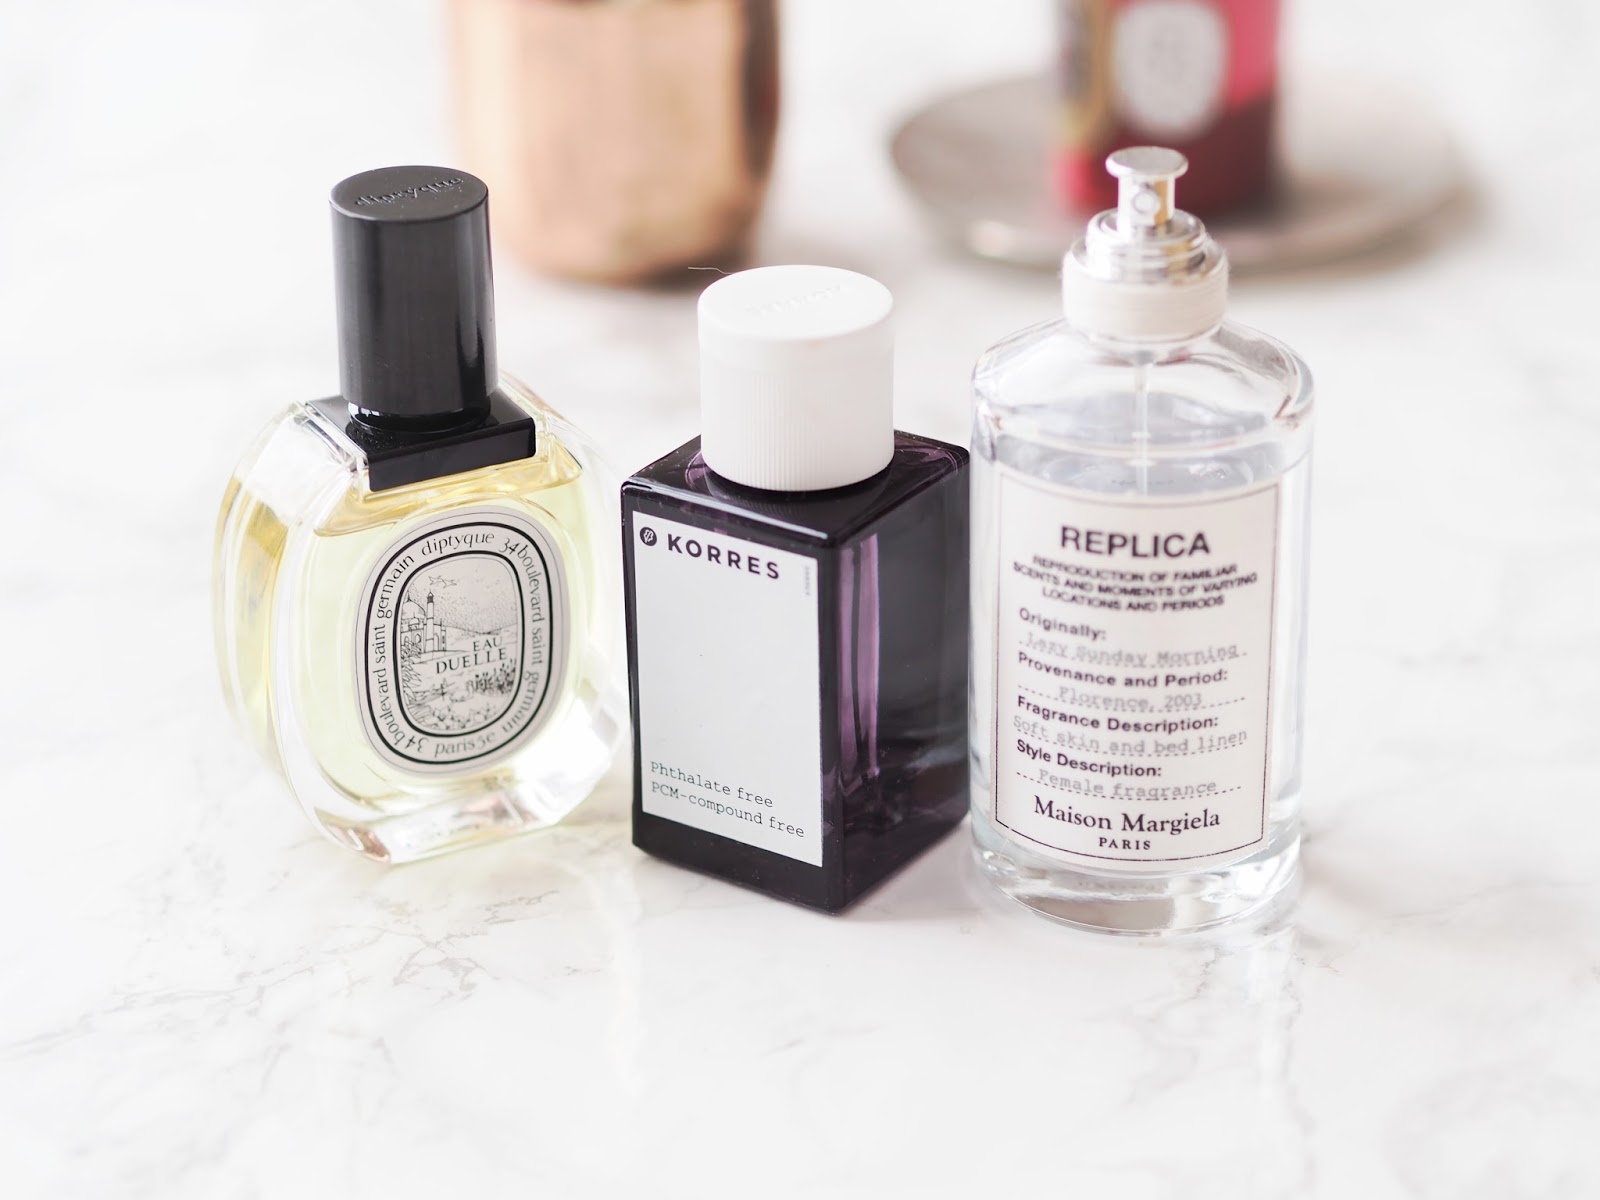 Perfumes I've Been Loving Lately, best perfumes, maison margiela lazy sunday morning, korres paenia, vanilla, amber, pear perfume, diptyque eau duelle eau de toilette, review, scent, notes, fragrance